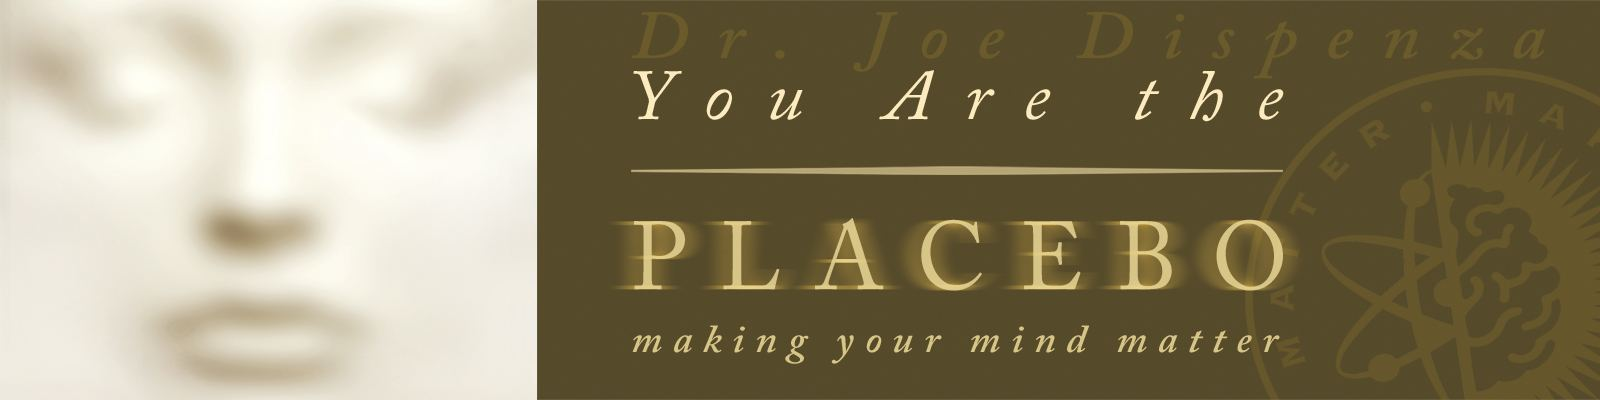 You Are the Placebo by Dr. Joe Dispenza Logo